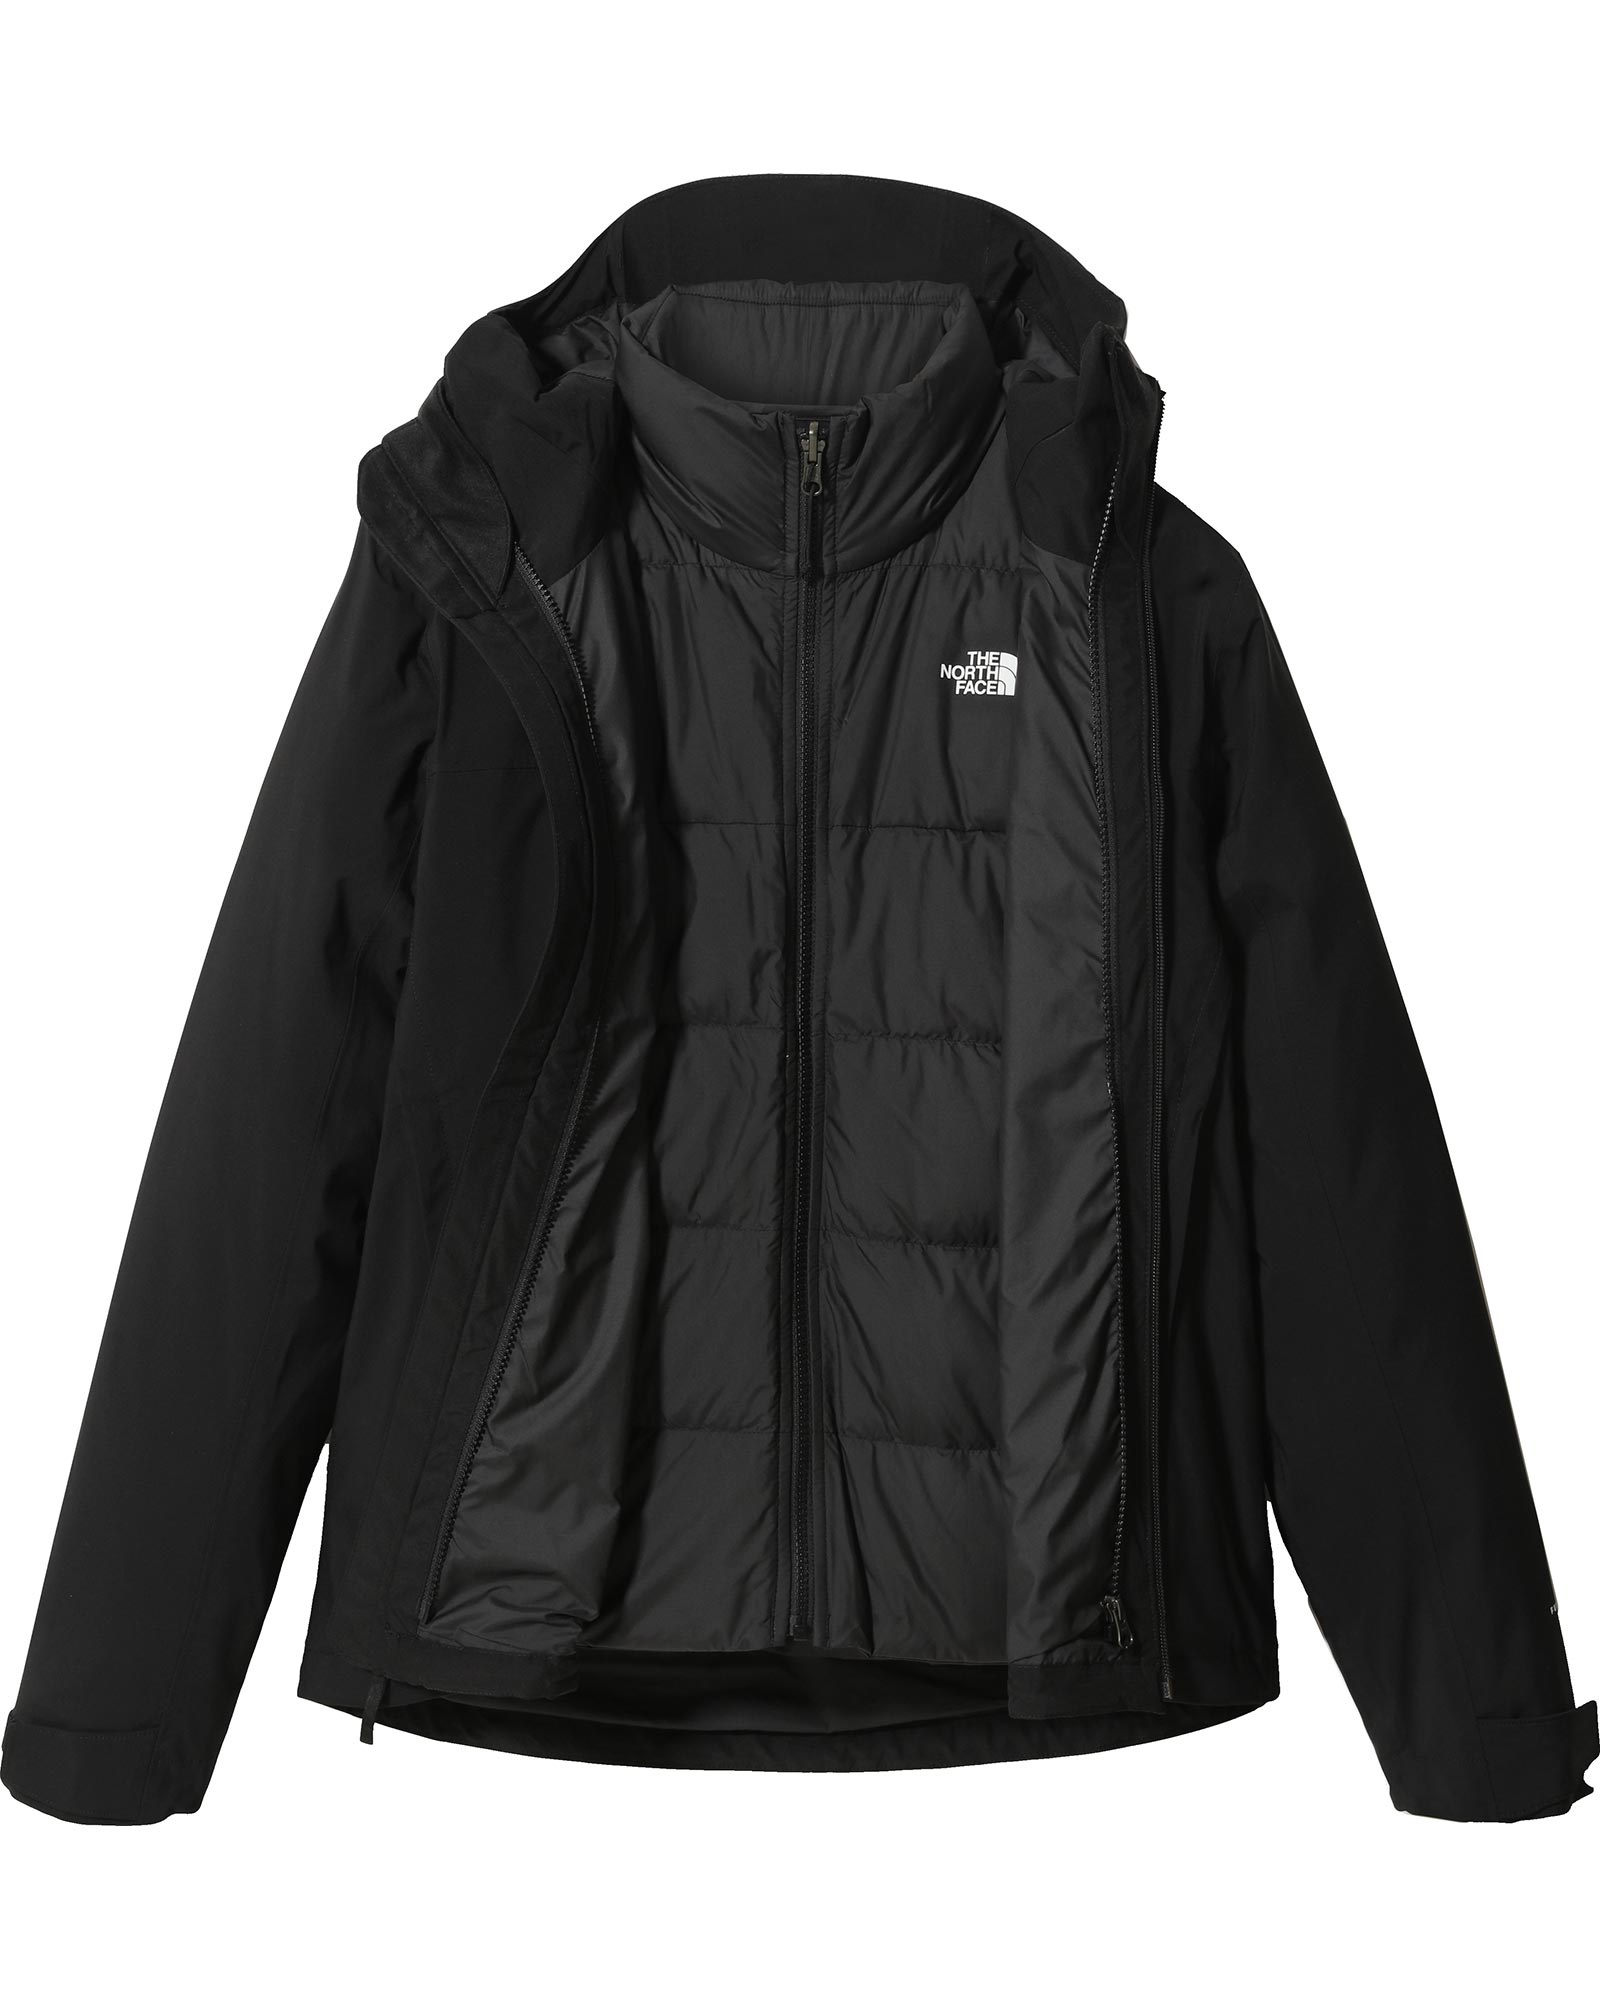 The North Face Mens Thermoball Eco Vest